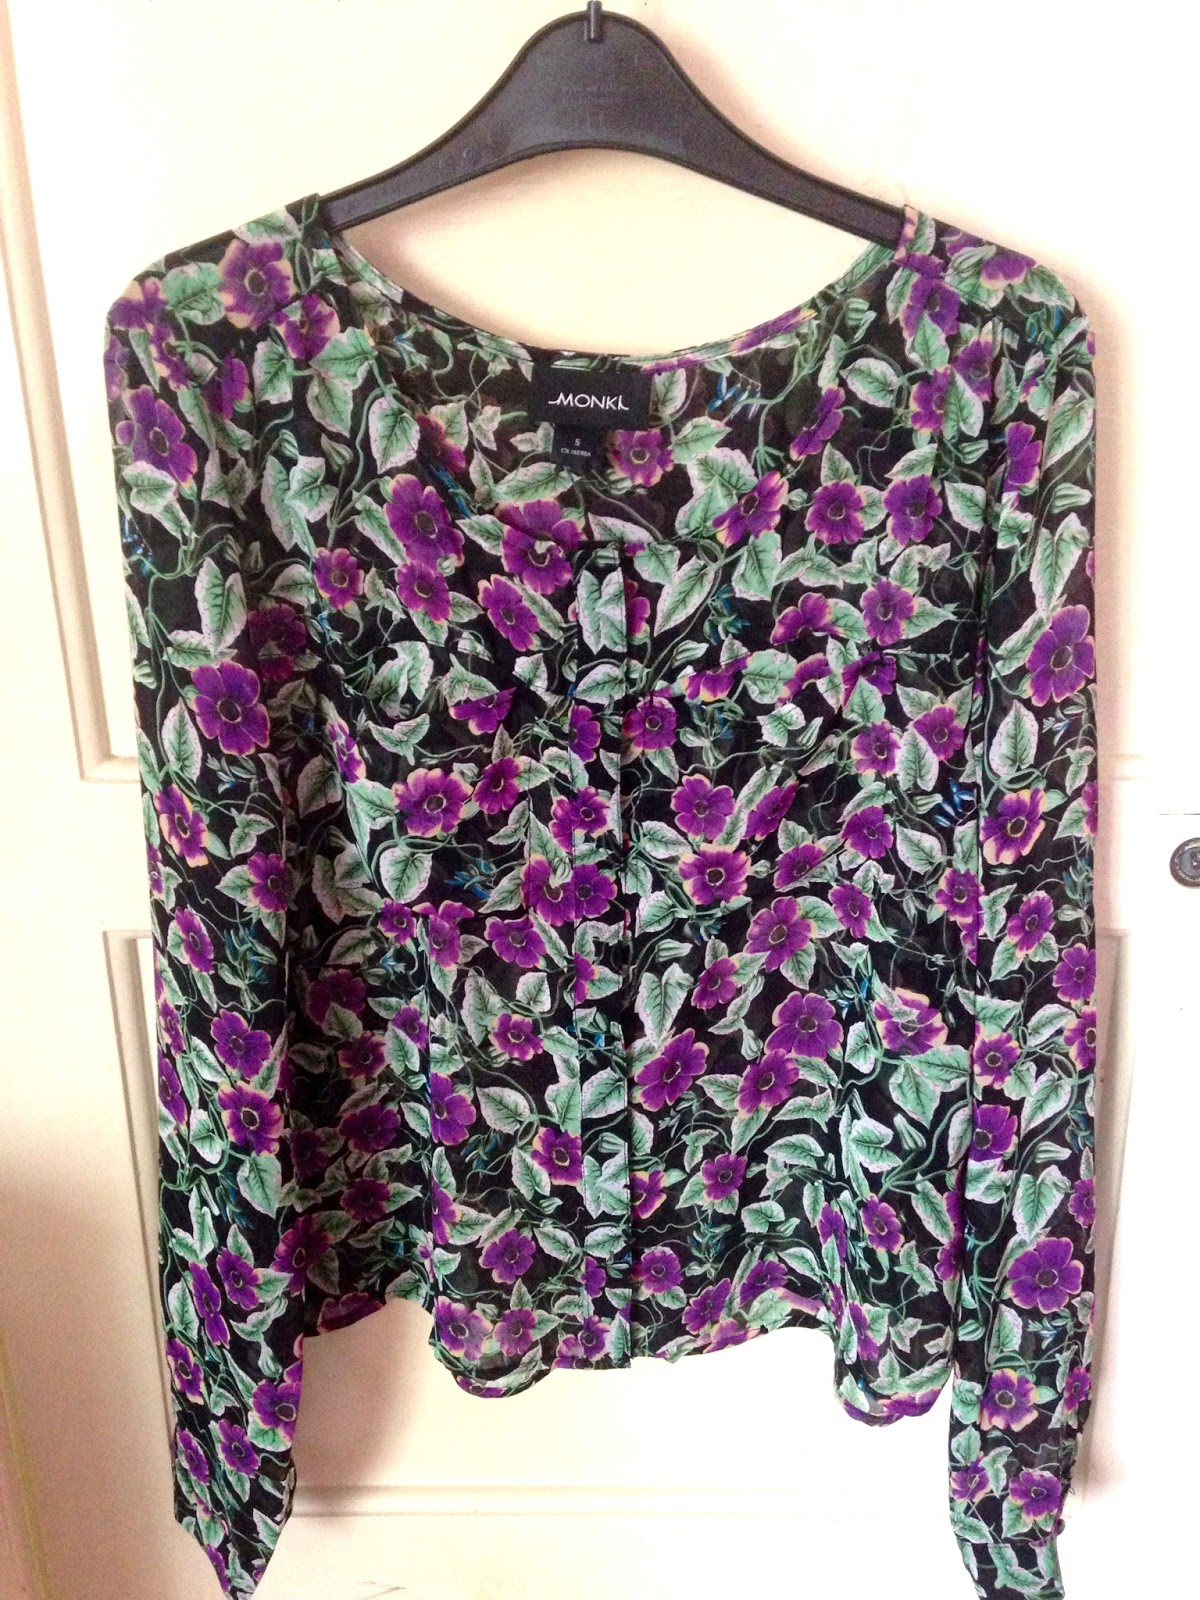 Monki Jessa Blouse